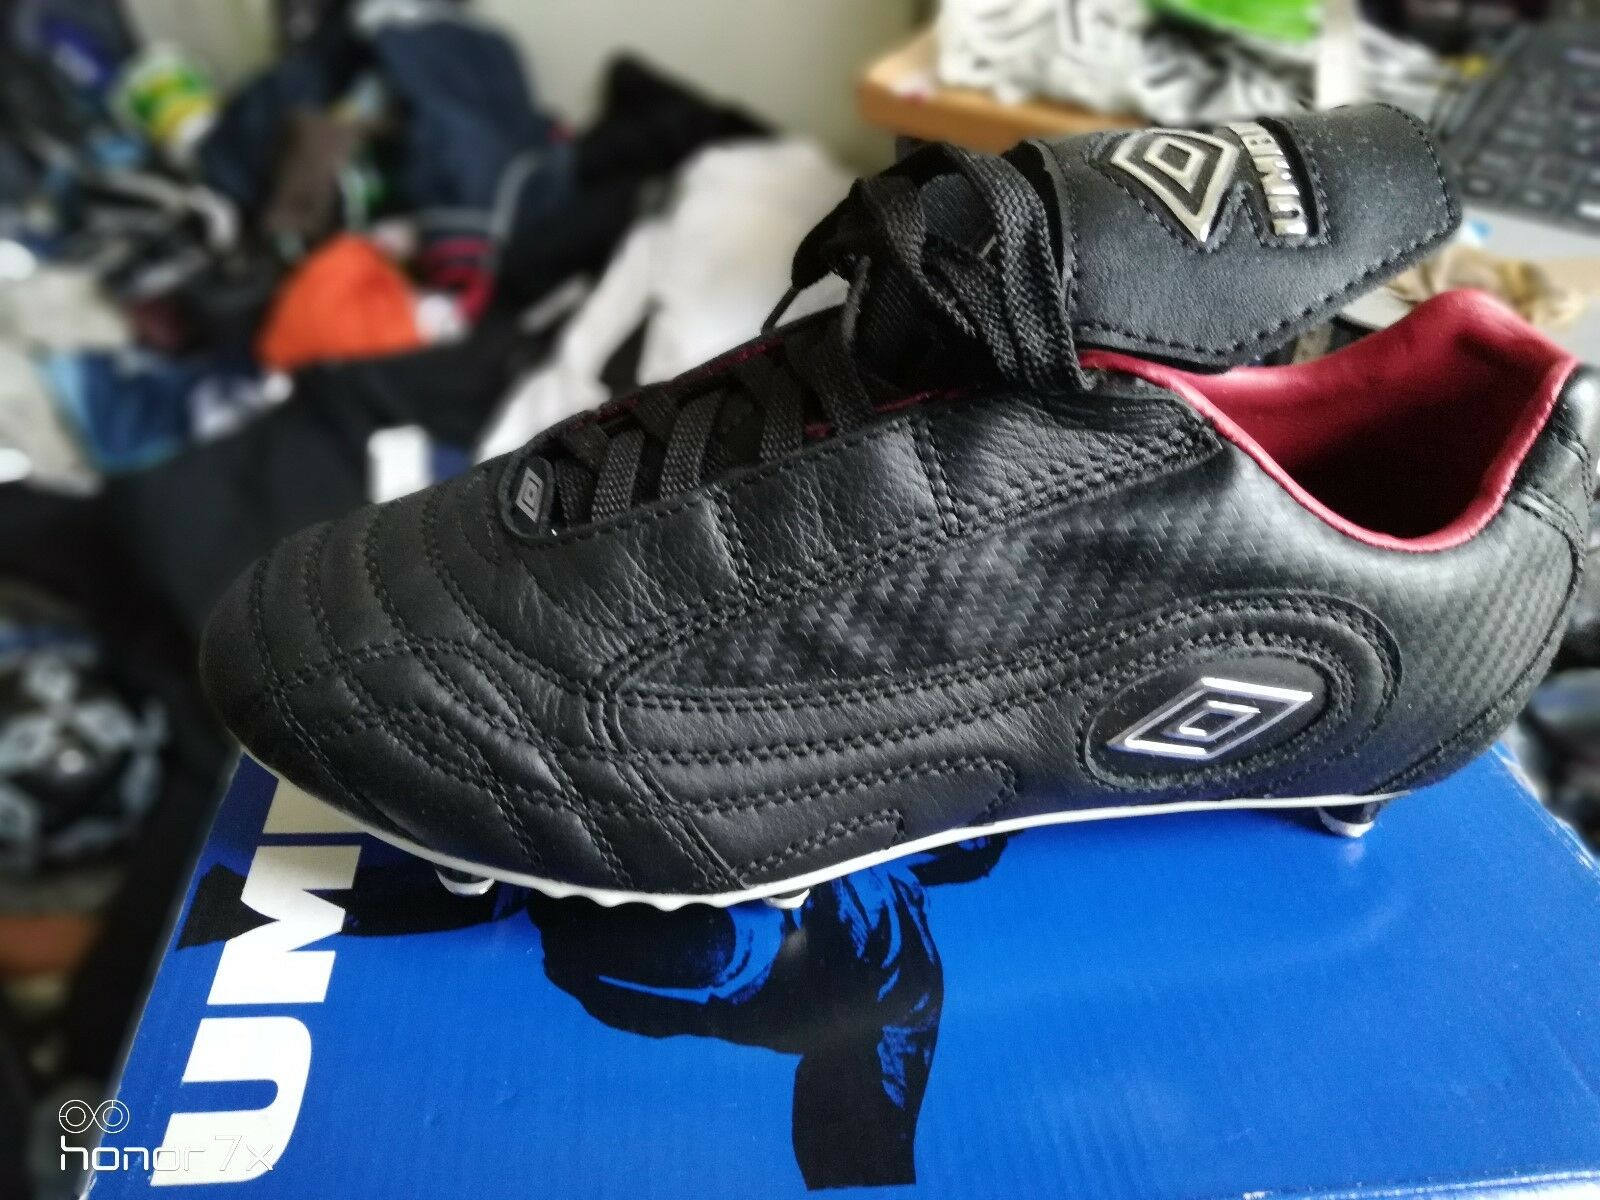 UMBRO  ENIGMA footbal BOOT in leather size  6  uk at   TOP OF RANGE